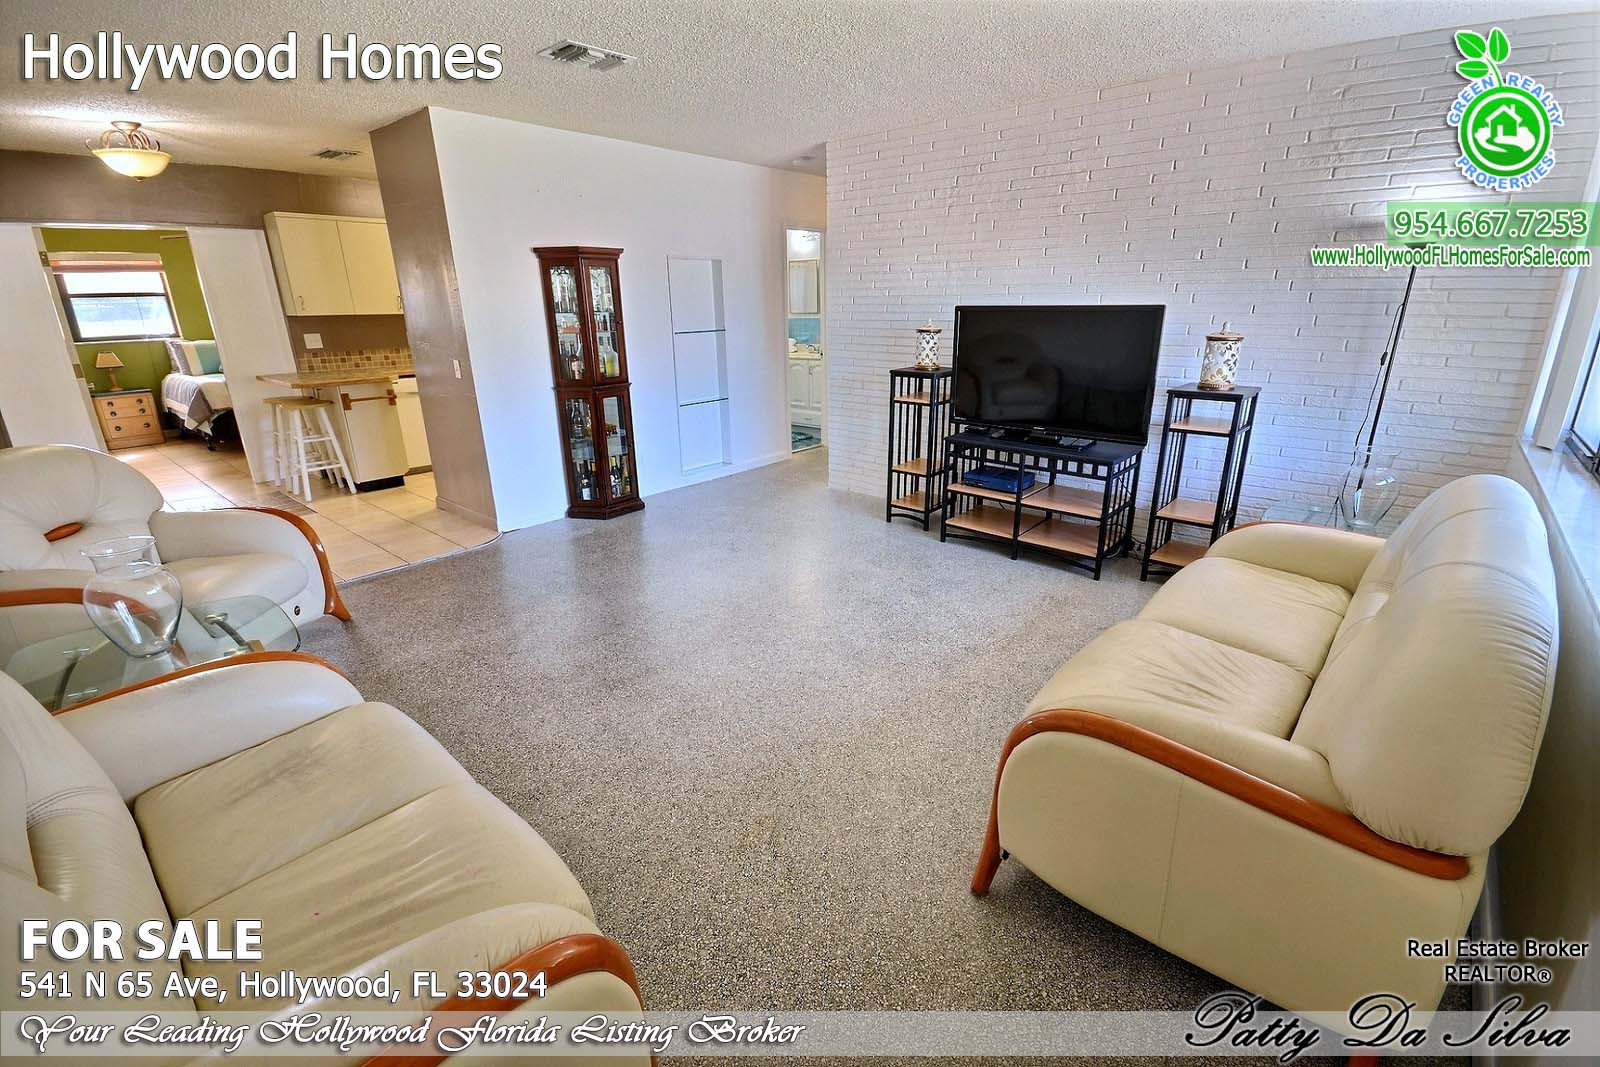 Homes For Sale in Hollywood Florida (21)